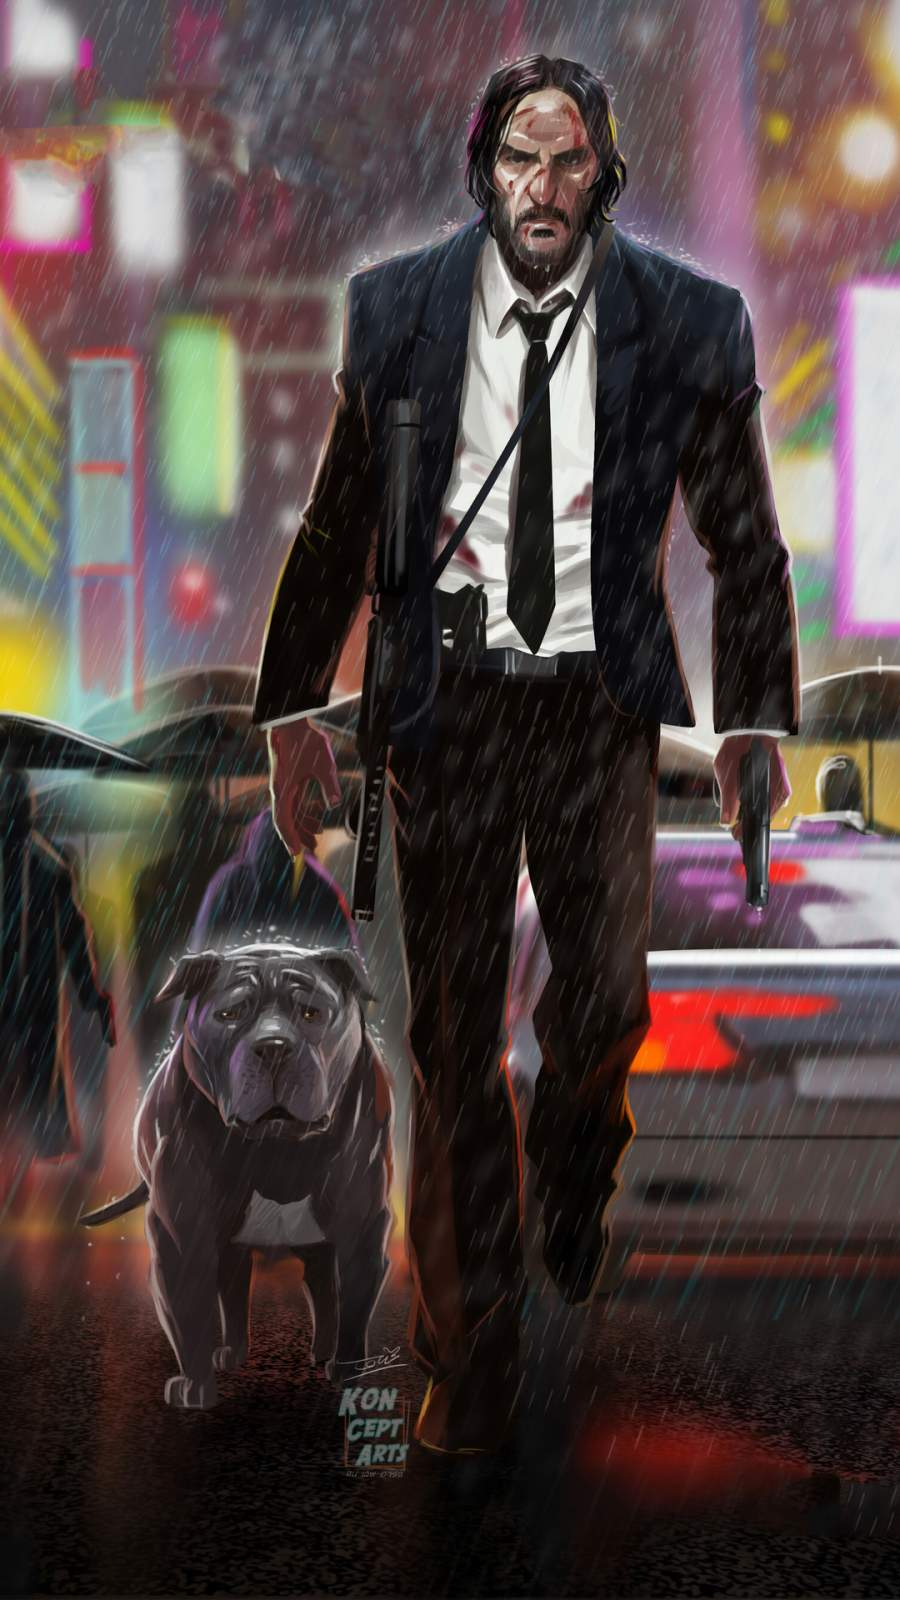 John Wick and Dog iPhone Wallpaper